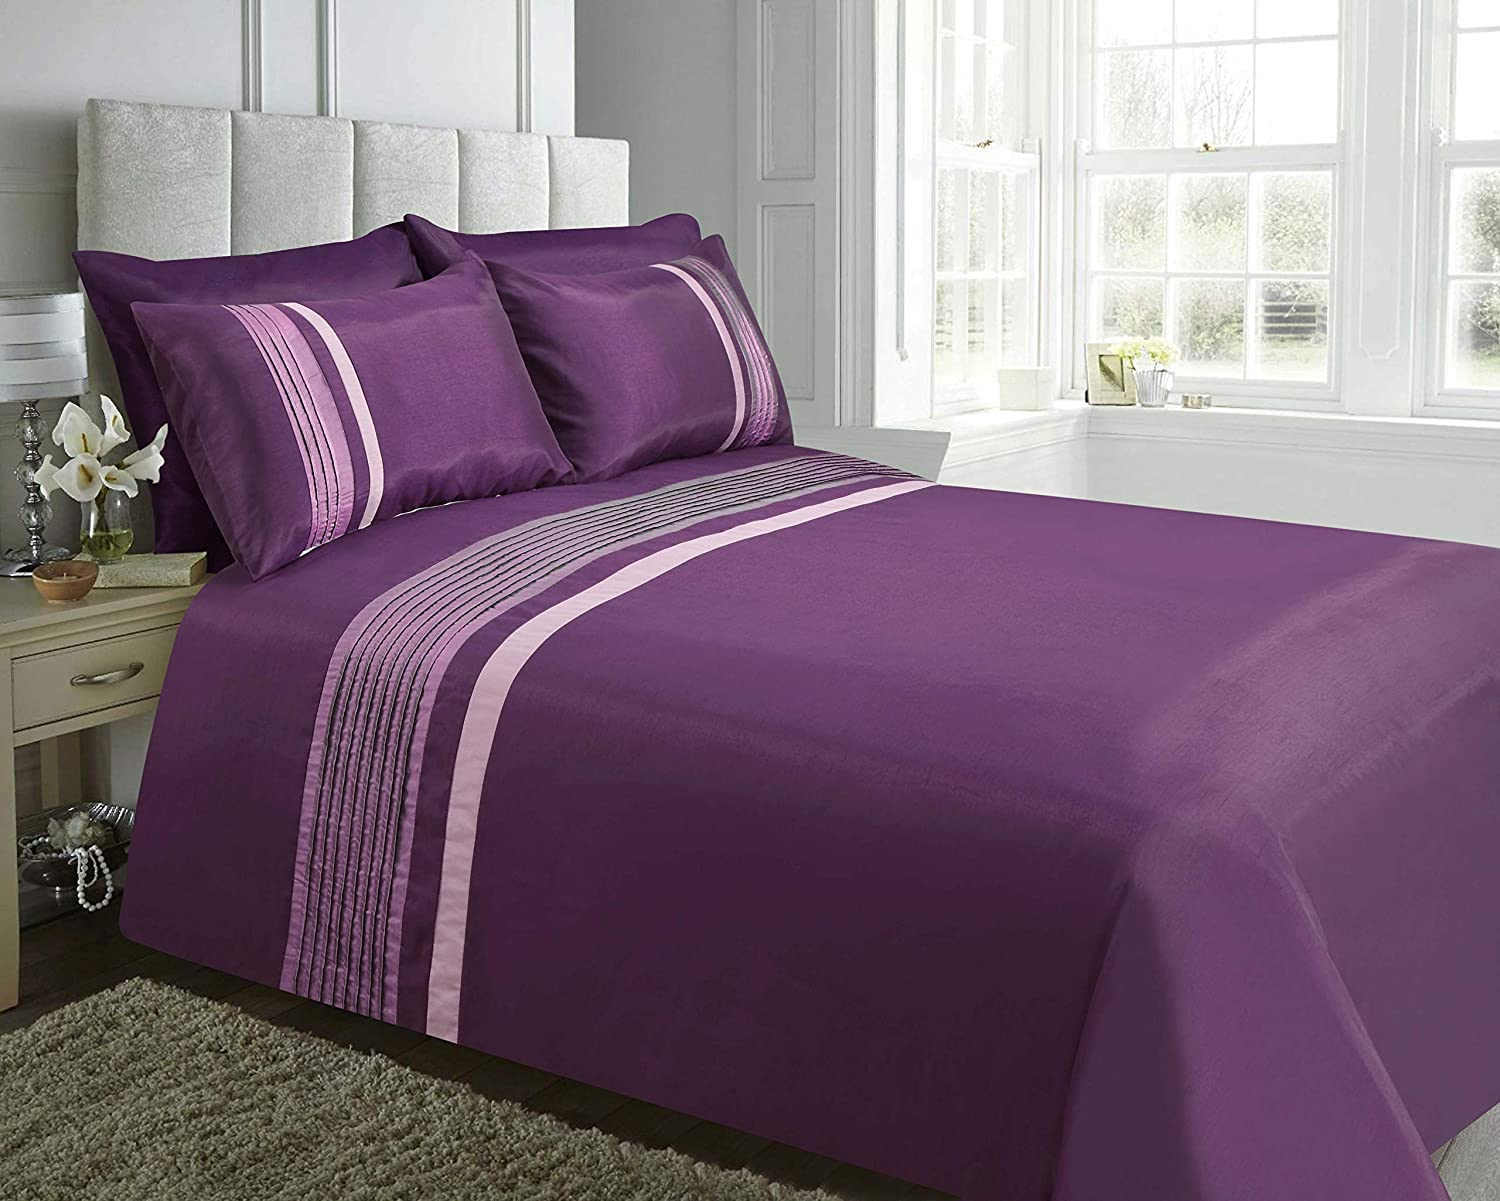 plum bedding